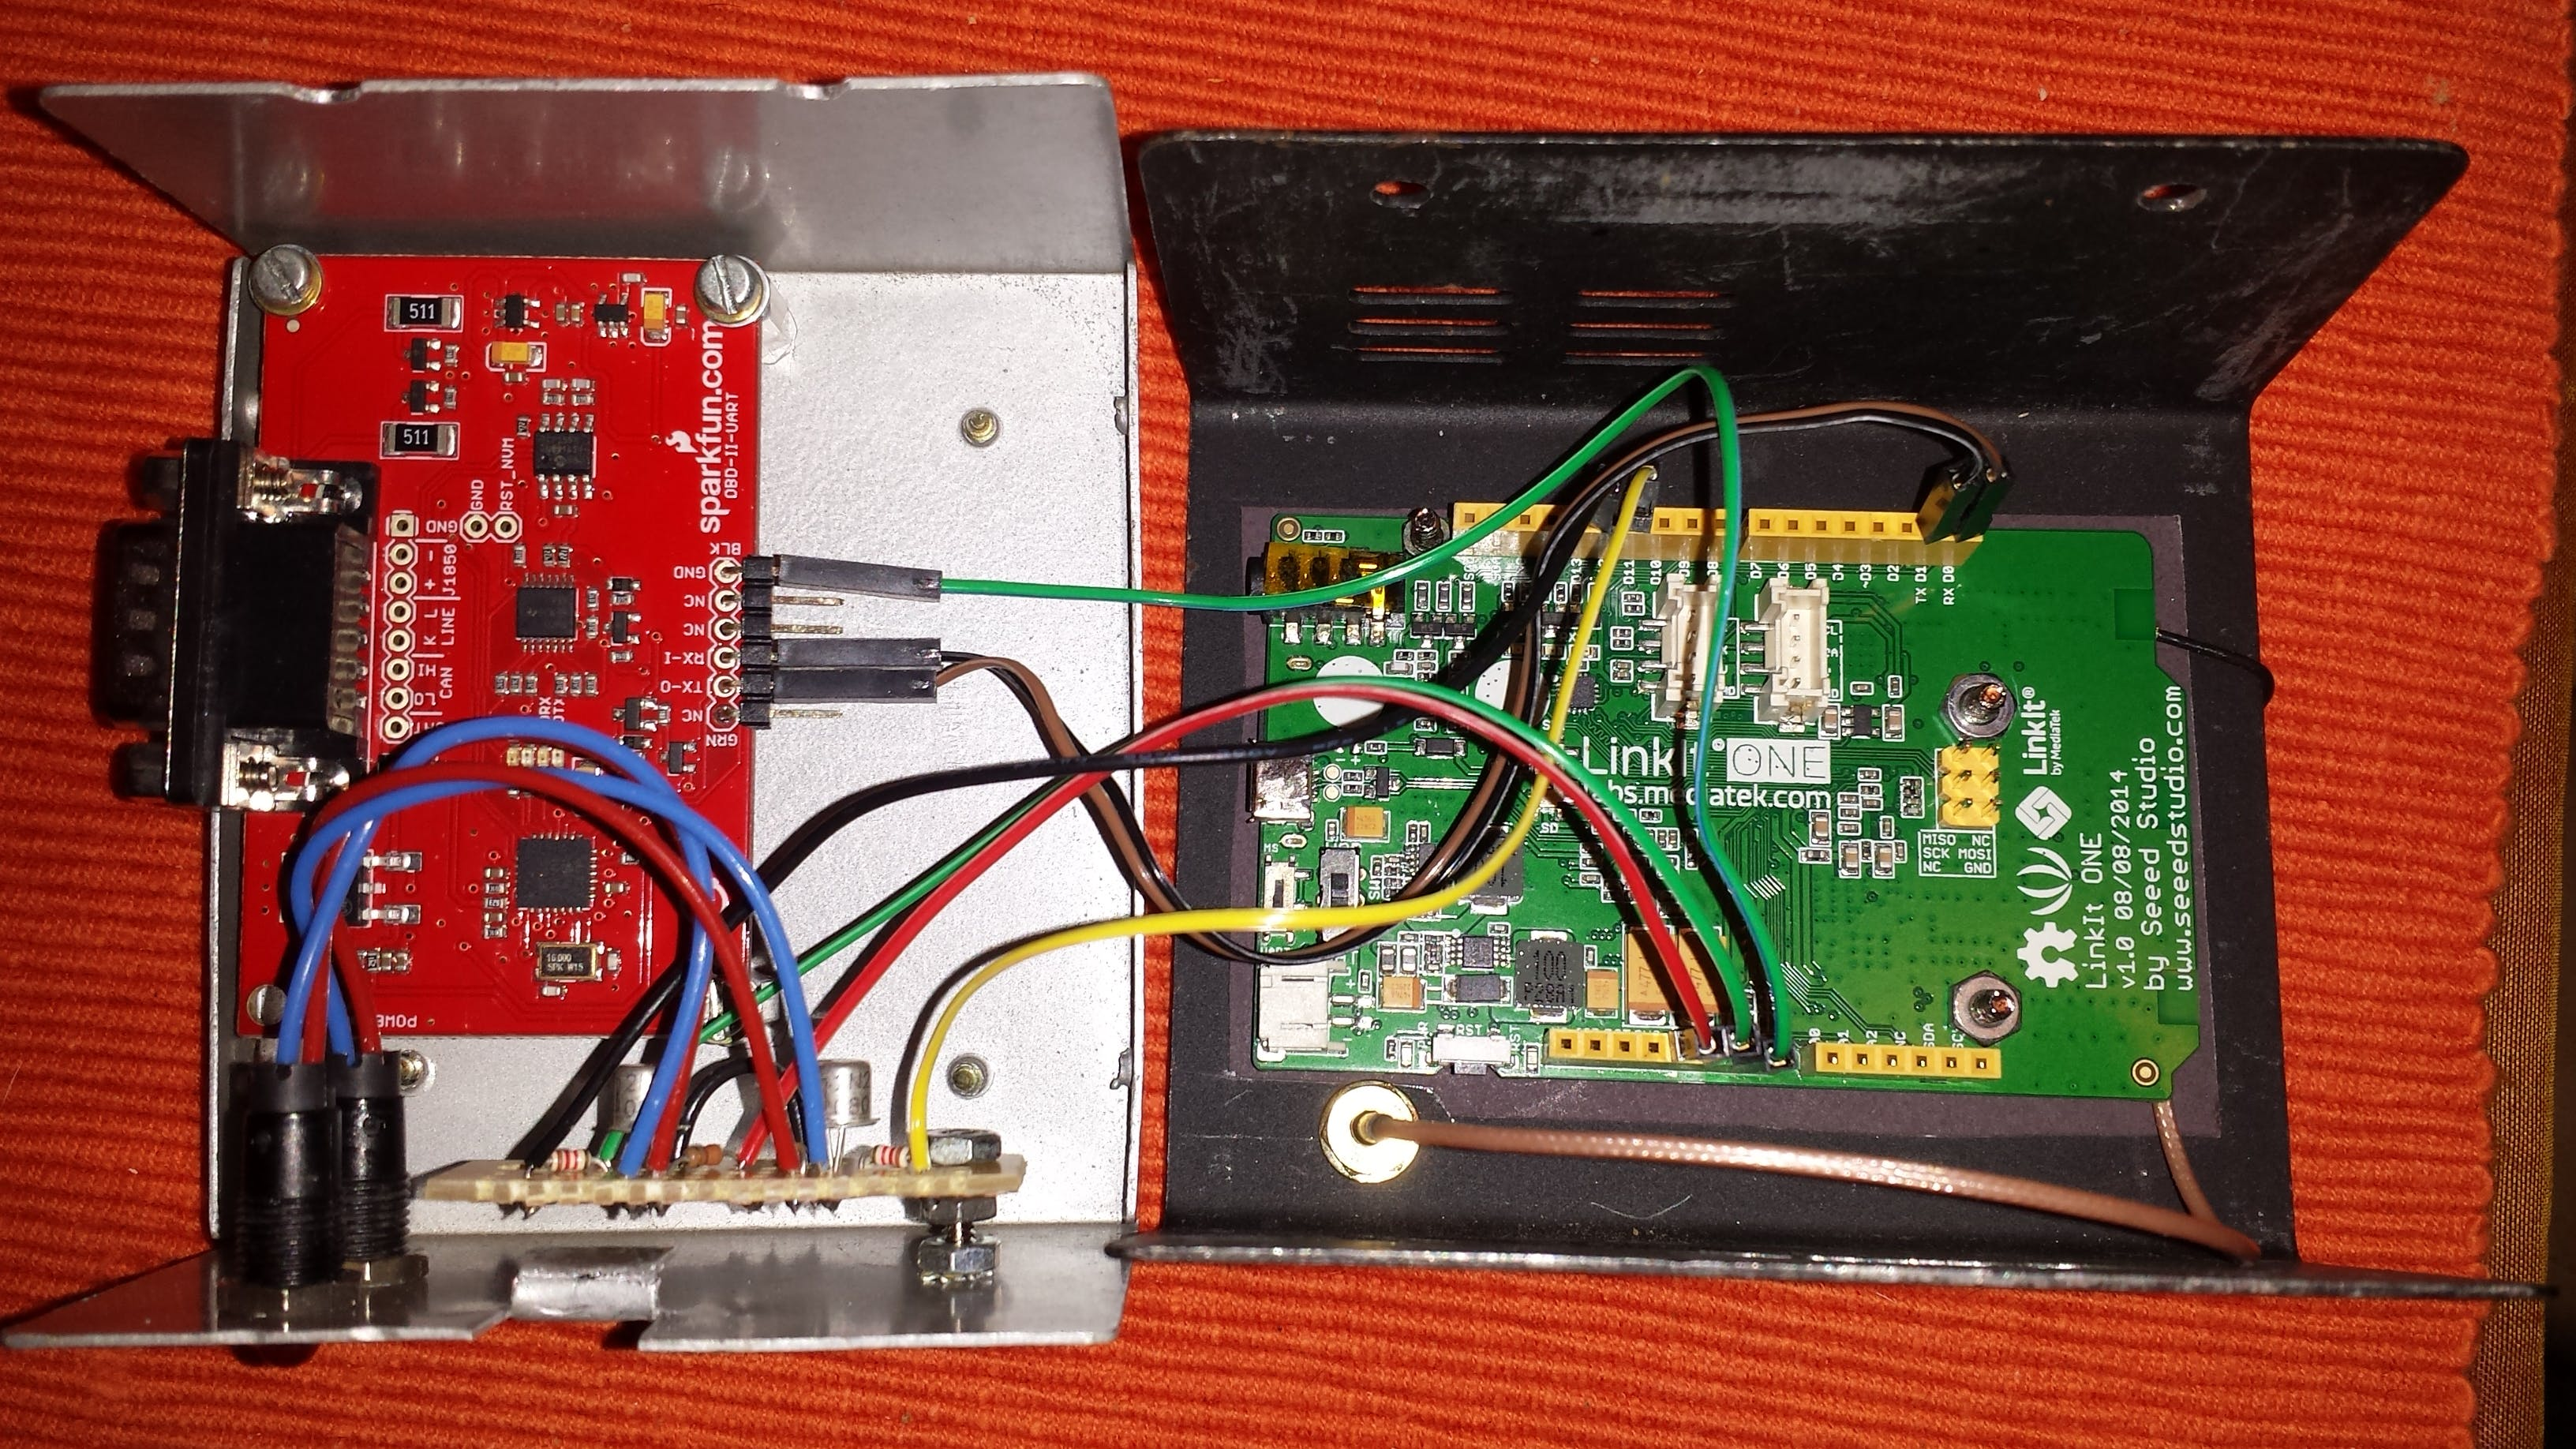 Inside box with OBD2 uart, LED drivers, Linkit One and gsm antenna cable